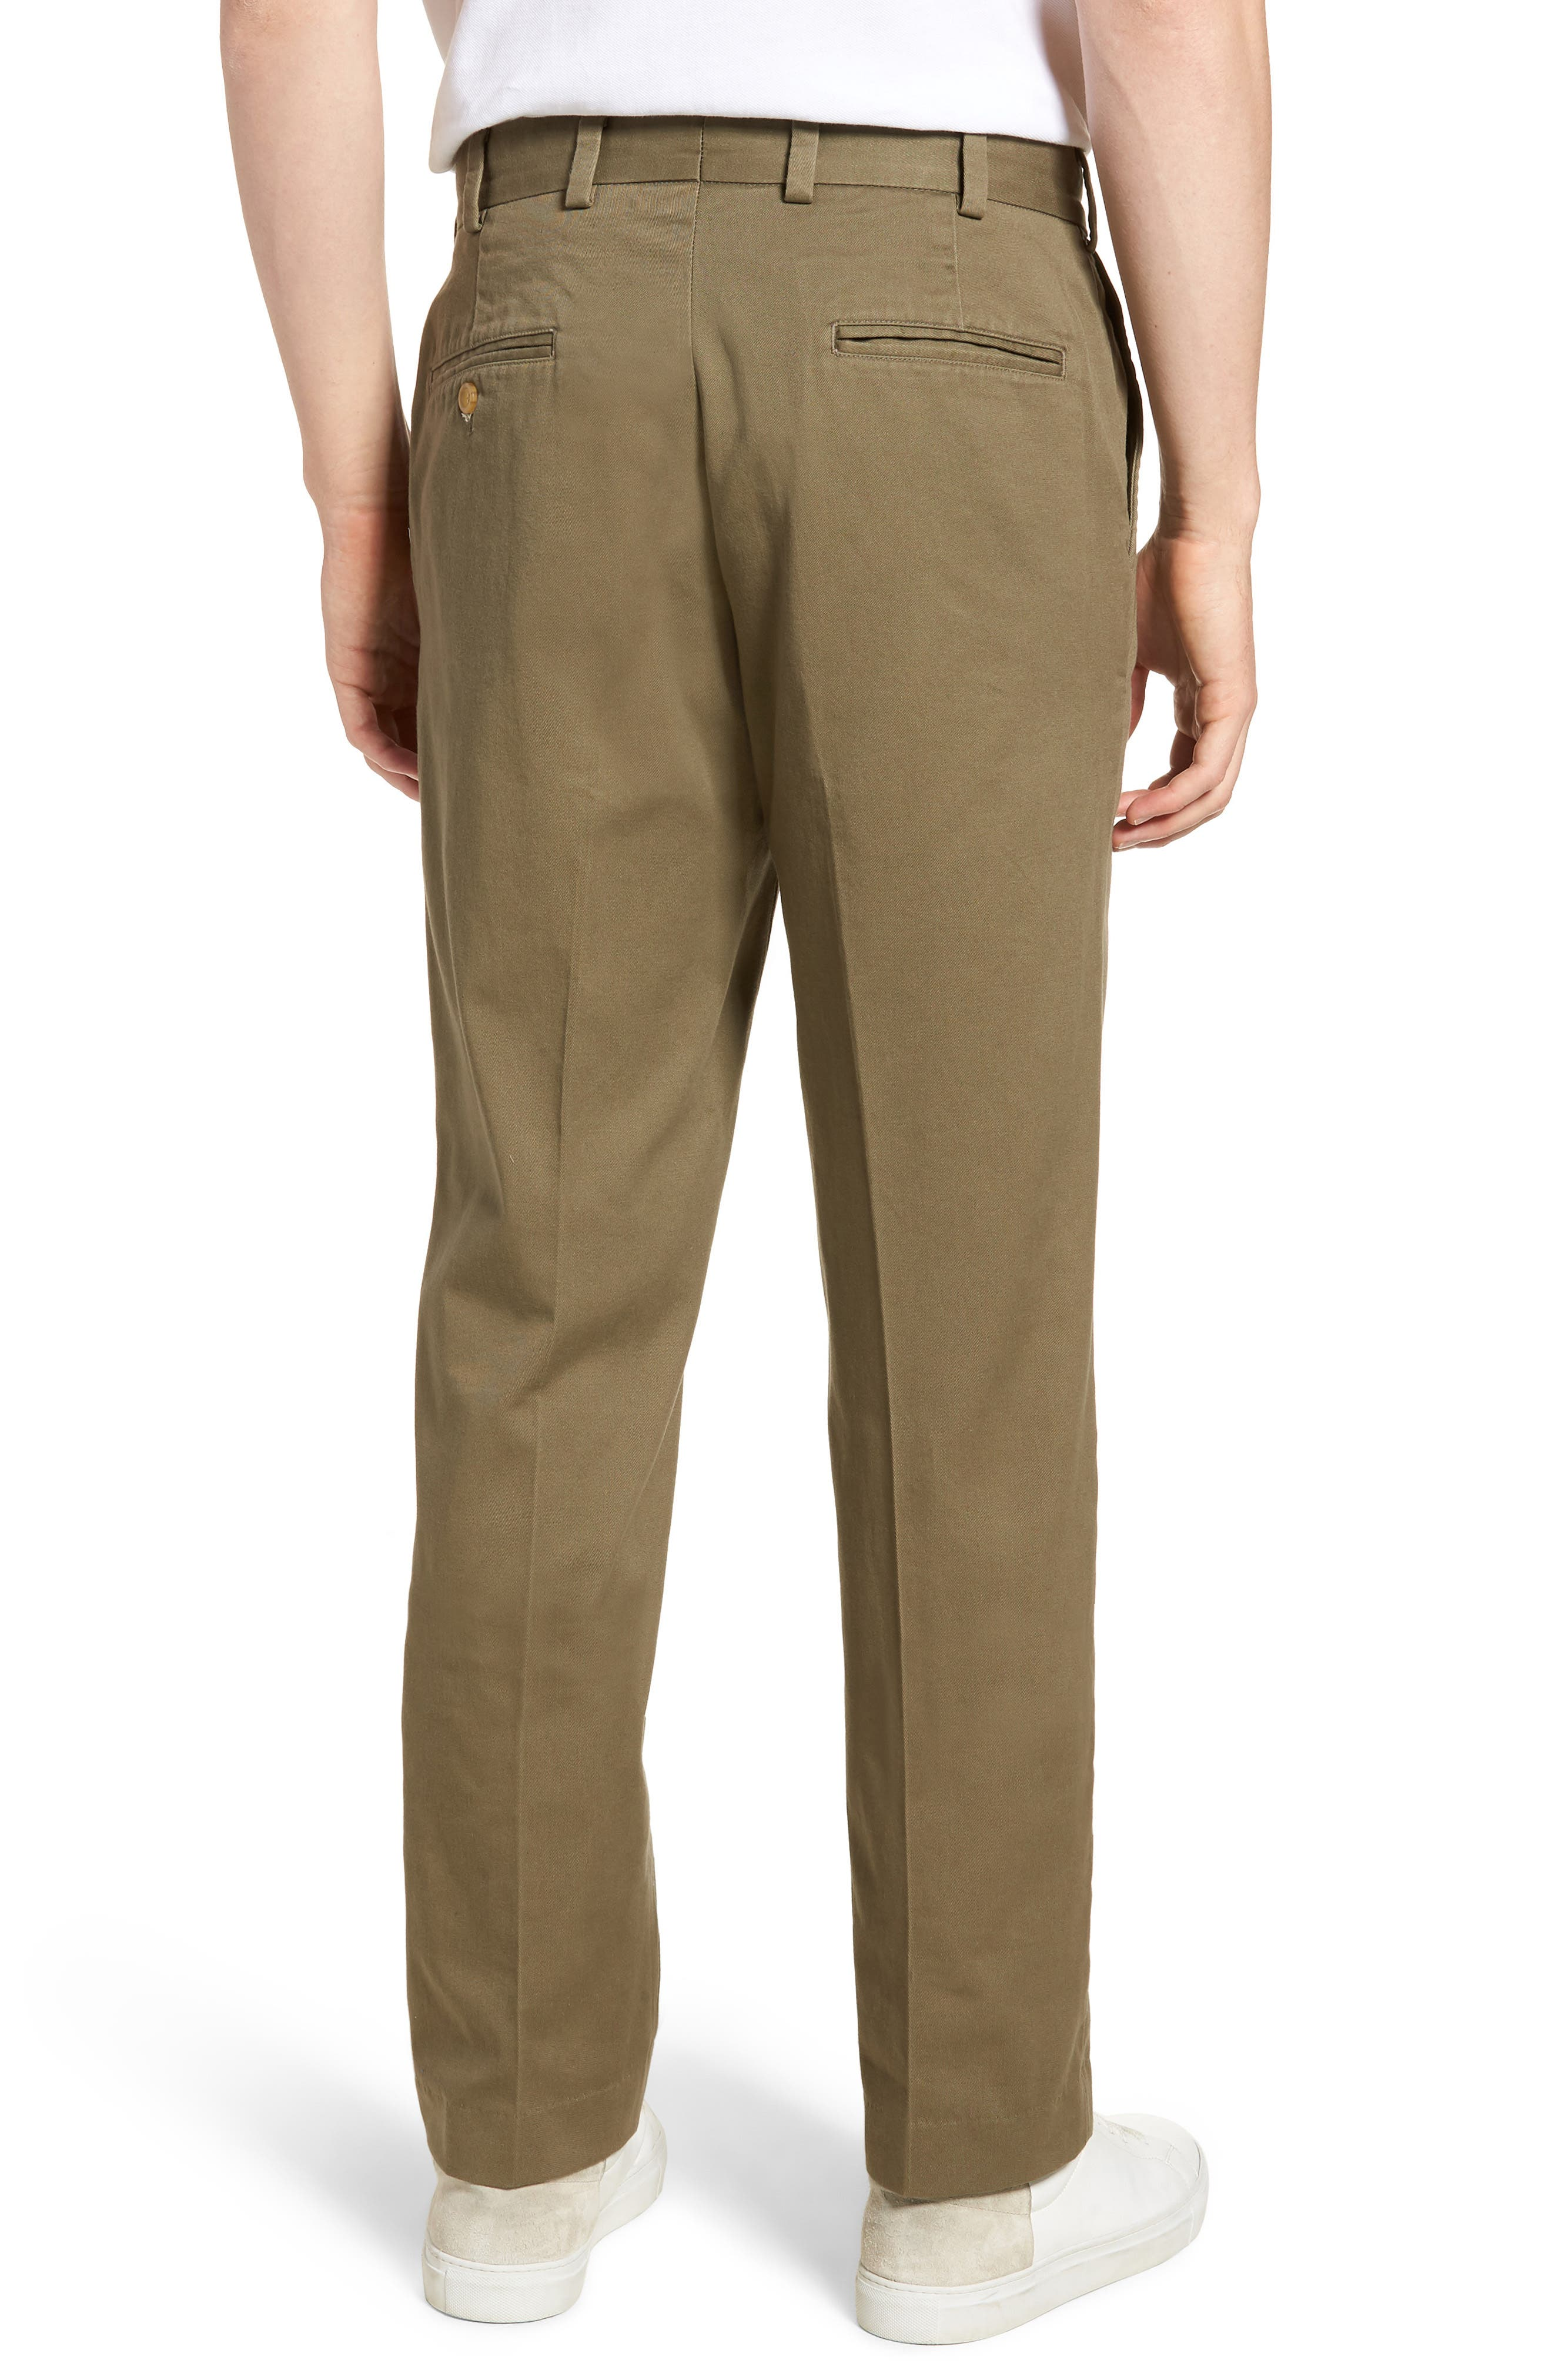 M3 Straight Fit Flat Front Vintage Twill Pants,                             Alternate thumbnail 2, color,                             Olive